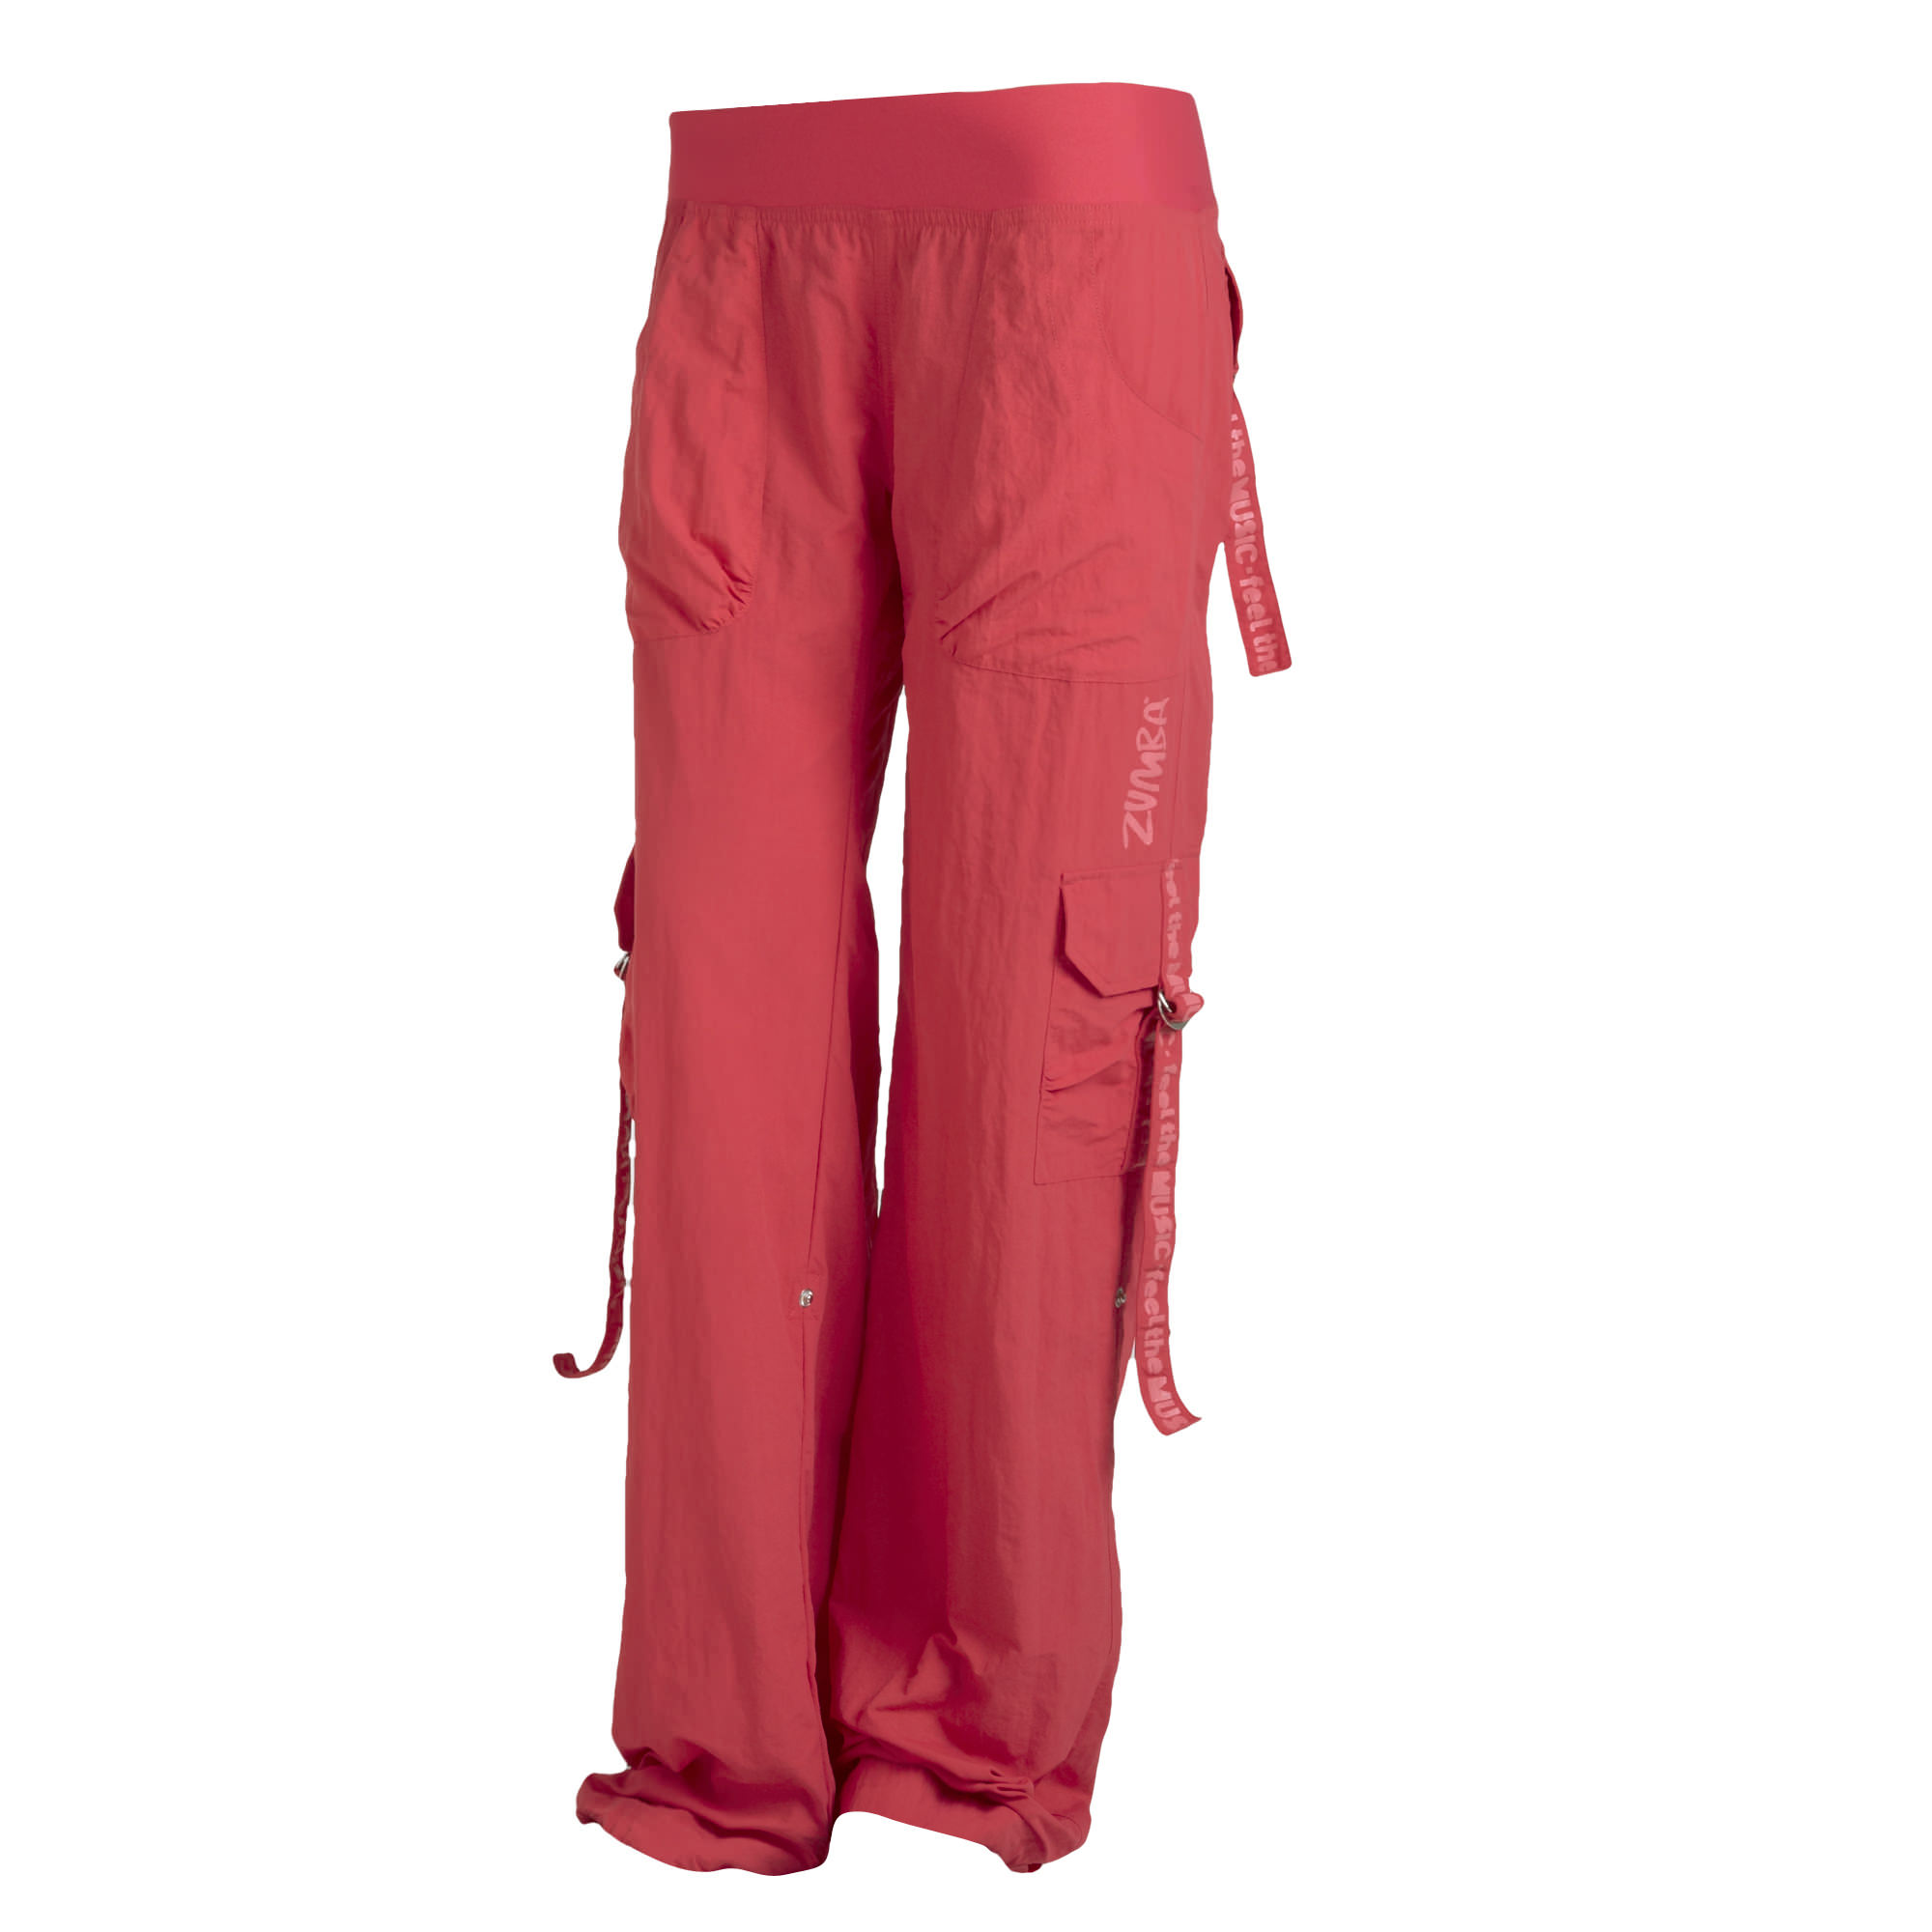 Cargo pants are perfect for running errands before your Zumba class, with pockets that make them versatile and useful for more than just exercise. eBay's wide selection, reliable sellers, and fast shipping options make it a breeze to get your groove on with Zumba pants.